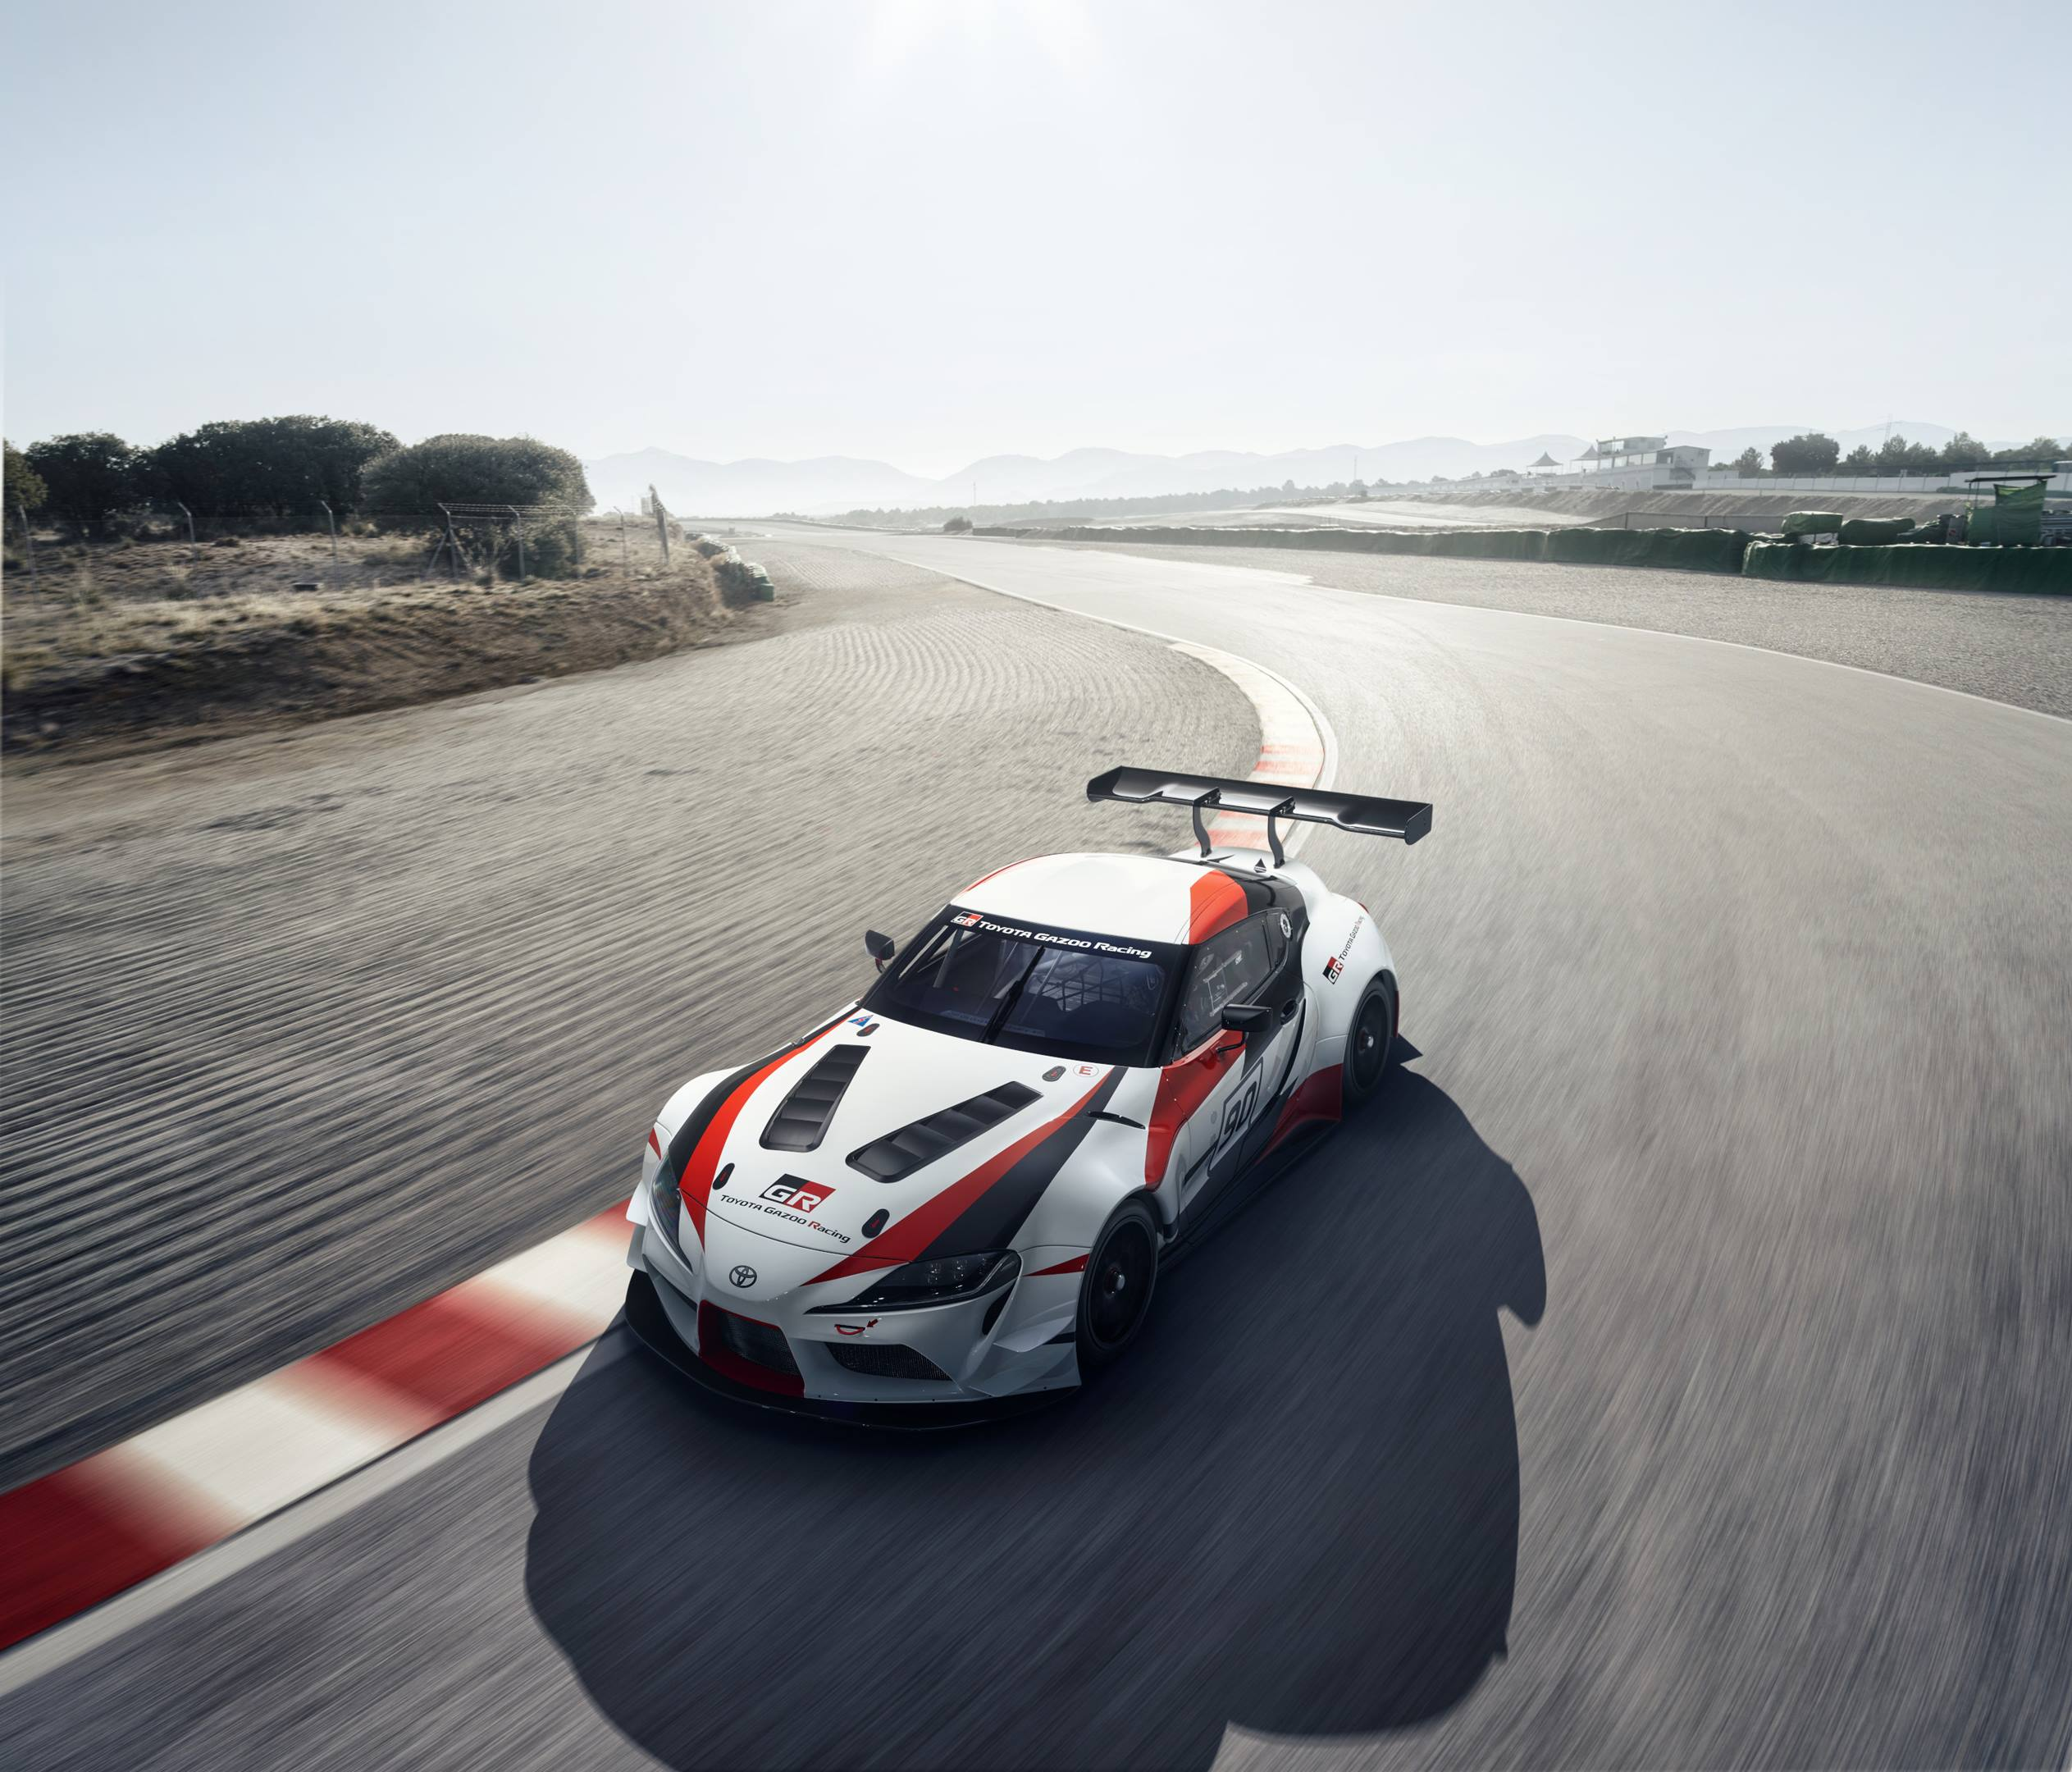 Toyota Supra concept racing around the track